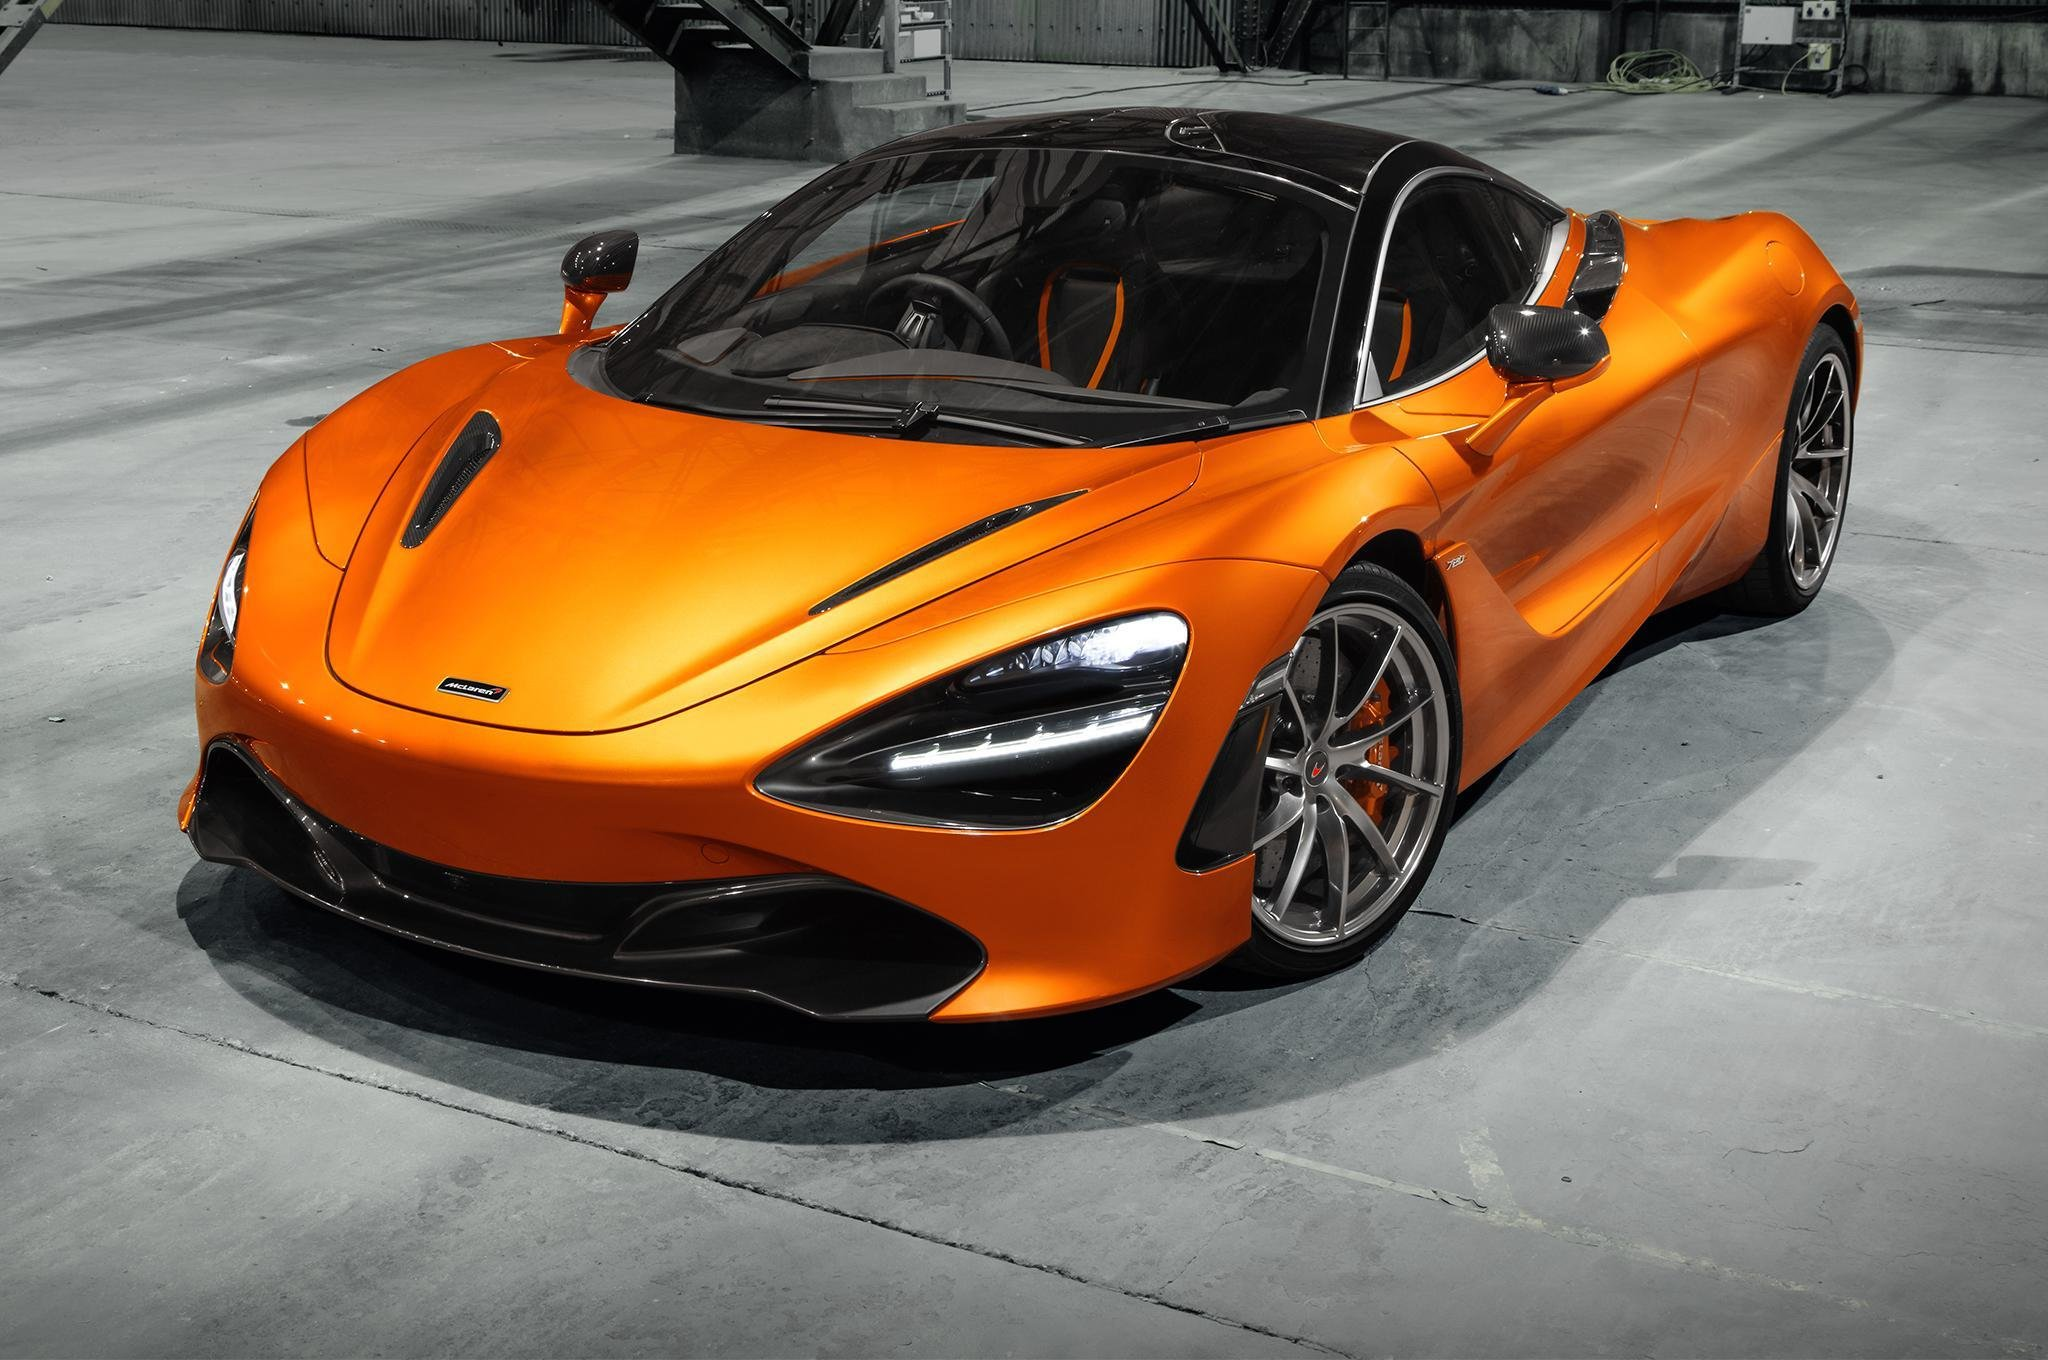 New Mclaren 720S Laptimes Specs Performance Data On This Month